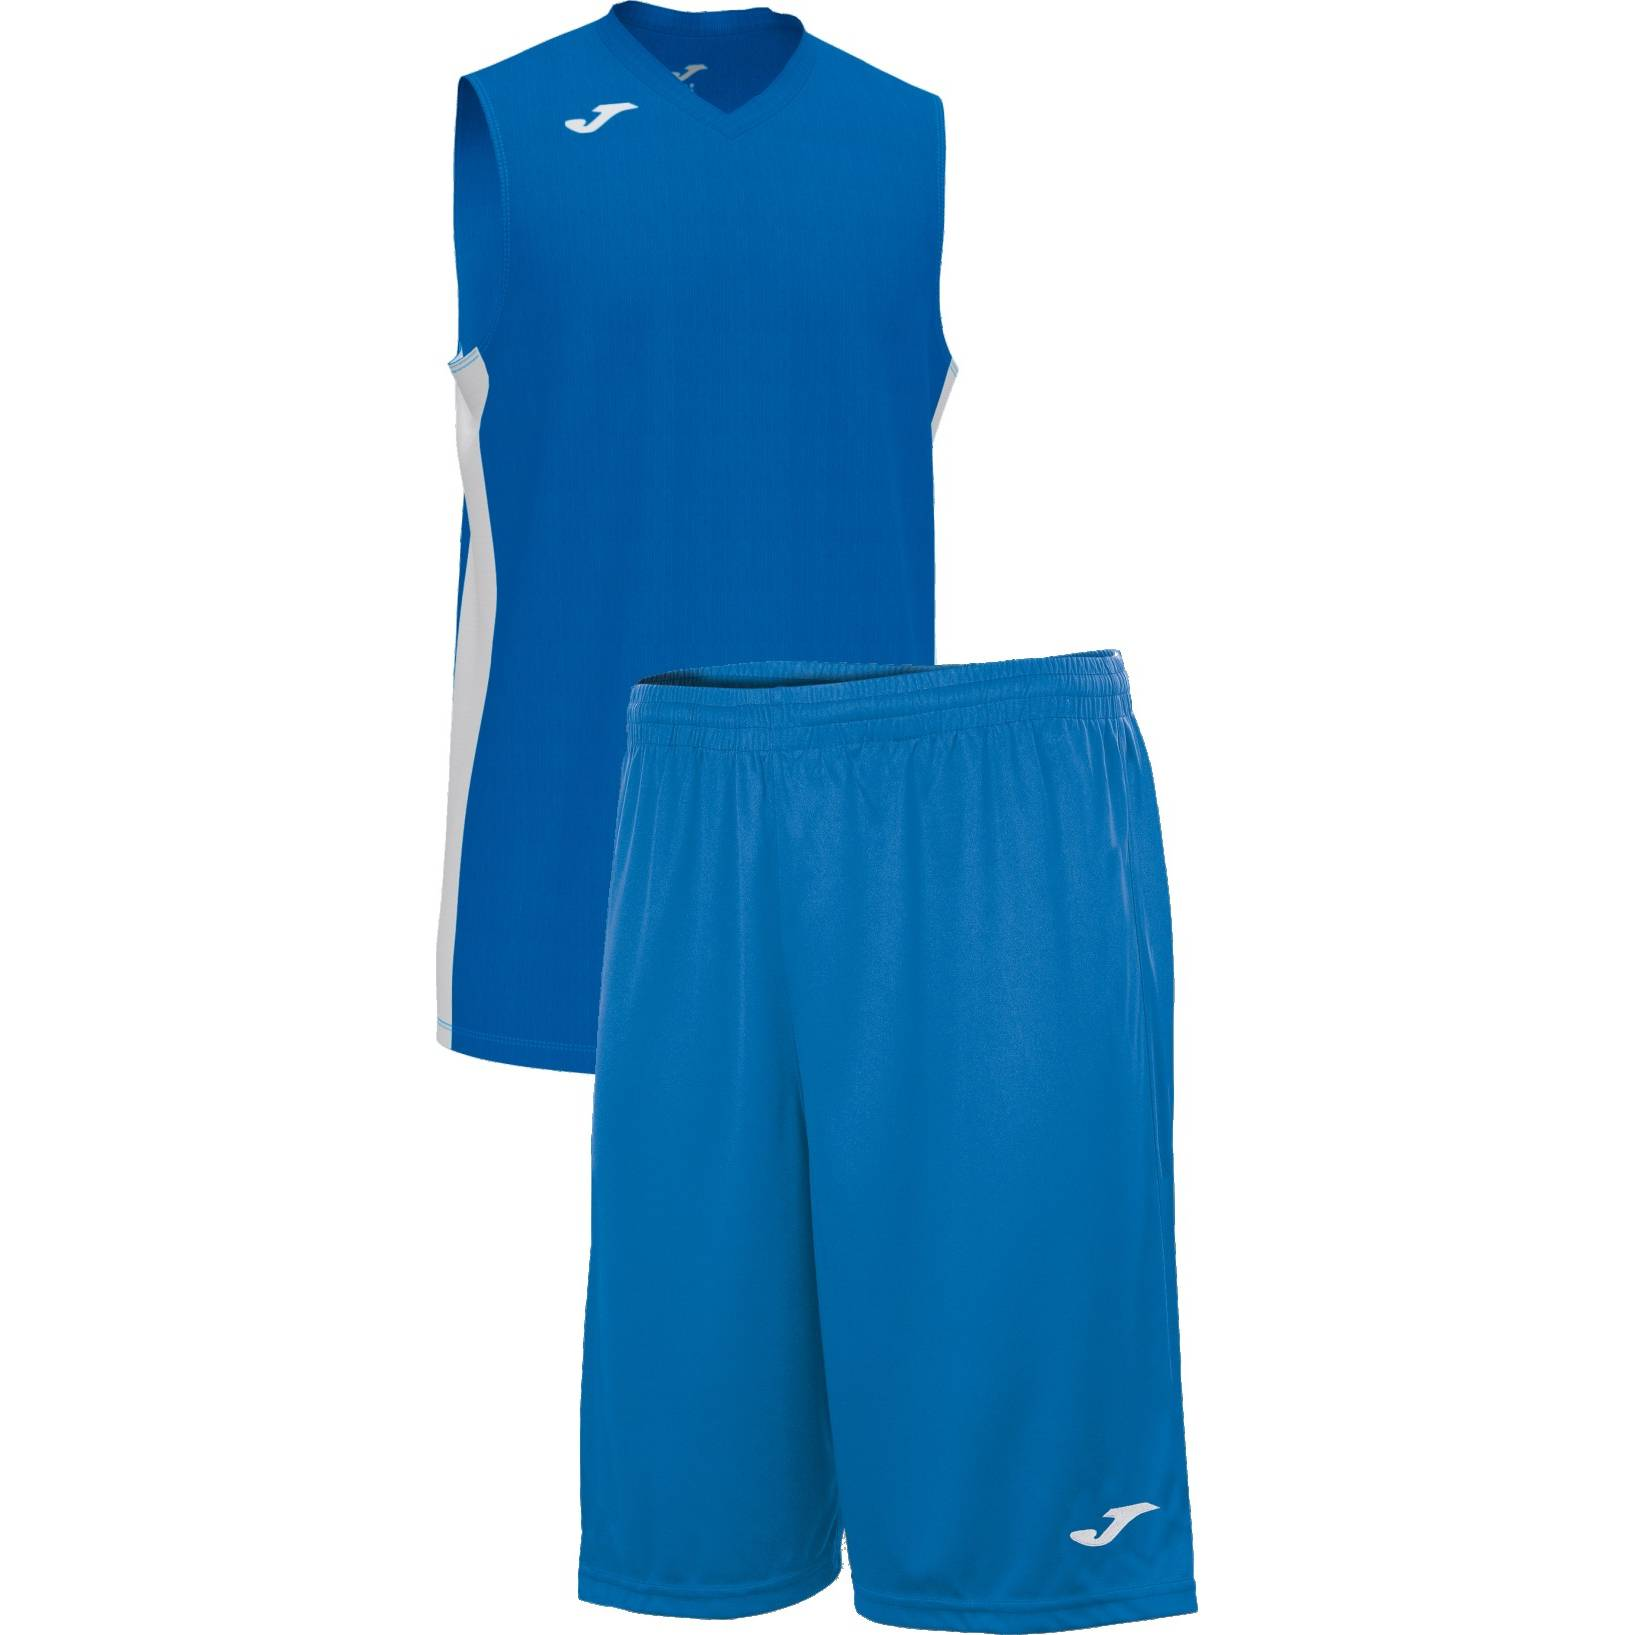 Teamwear - Joma Cancha Sleeveless  & Nobel Long Shorts Set - Royal Blue/White - JO-101573-702-101648-White